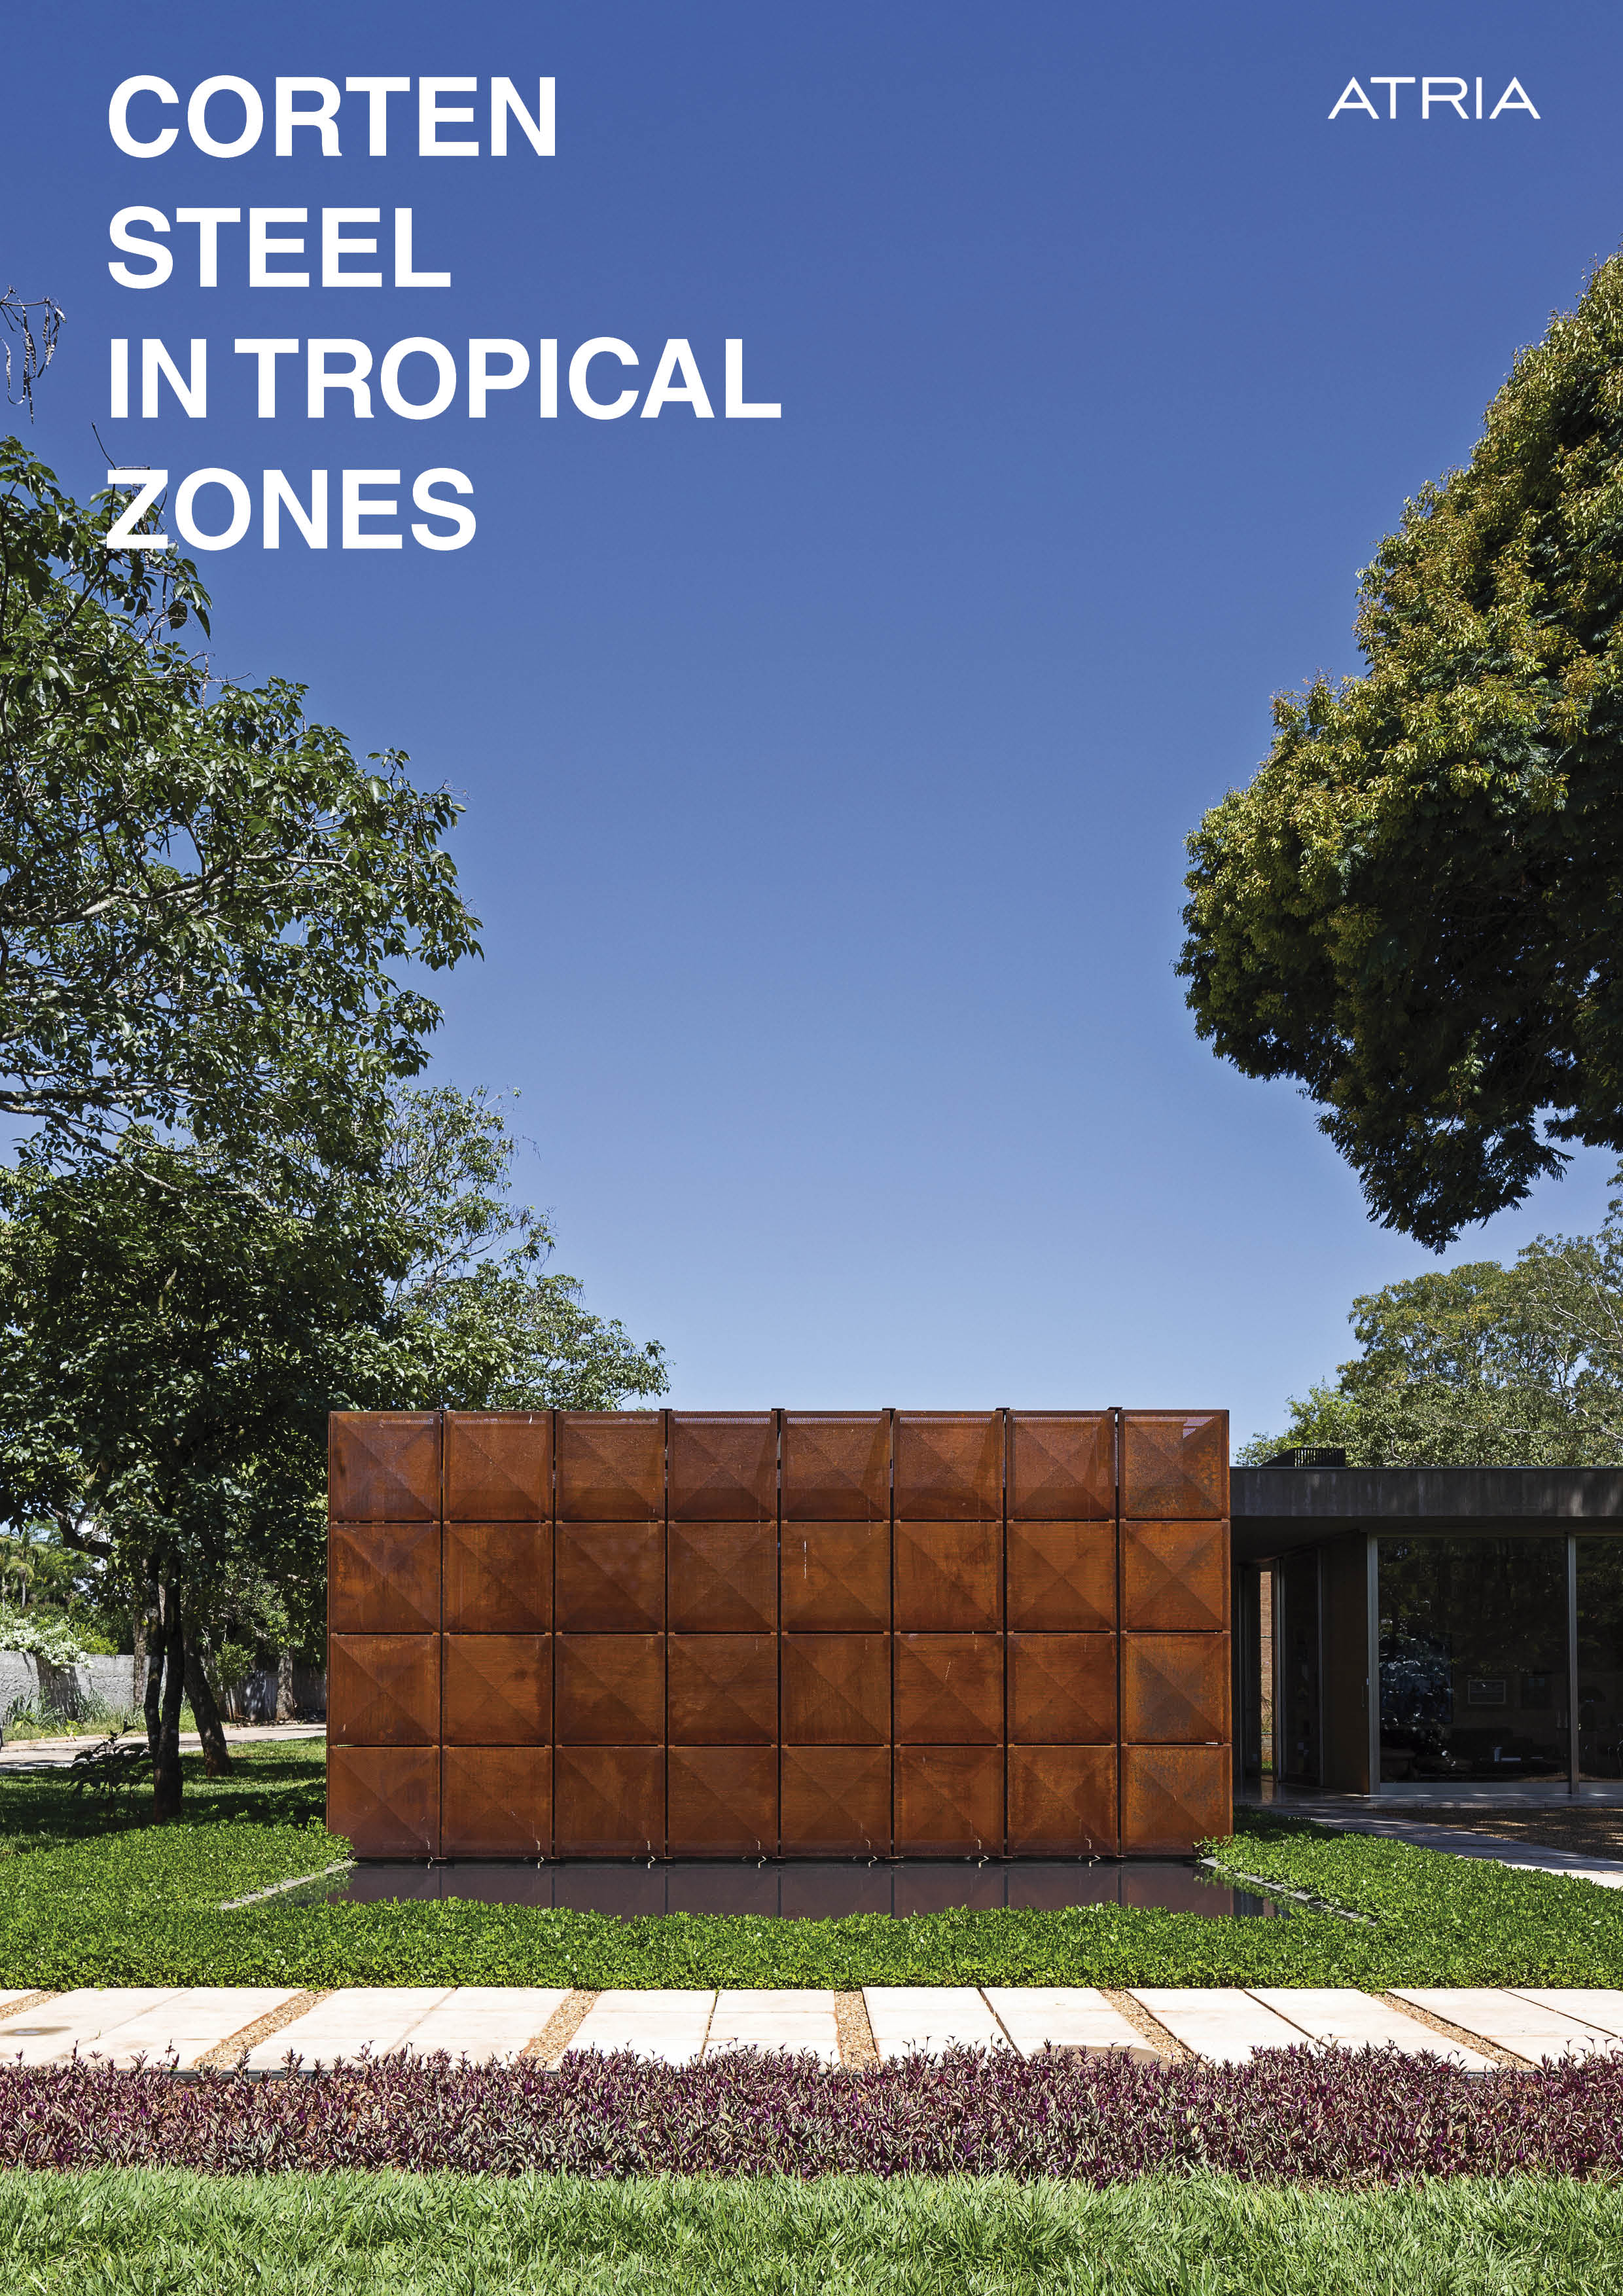 Corten steel in tropical zones →